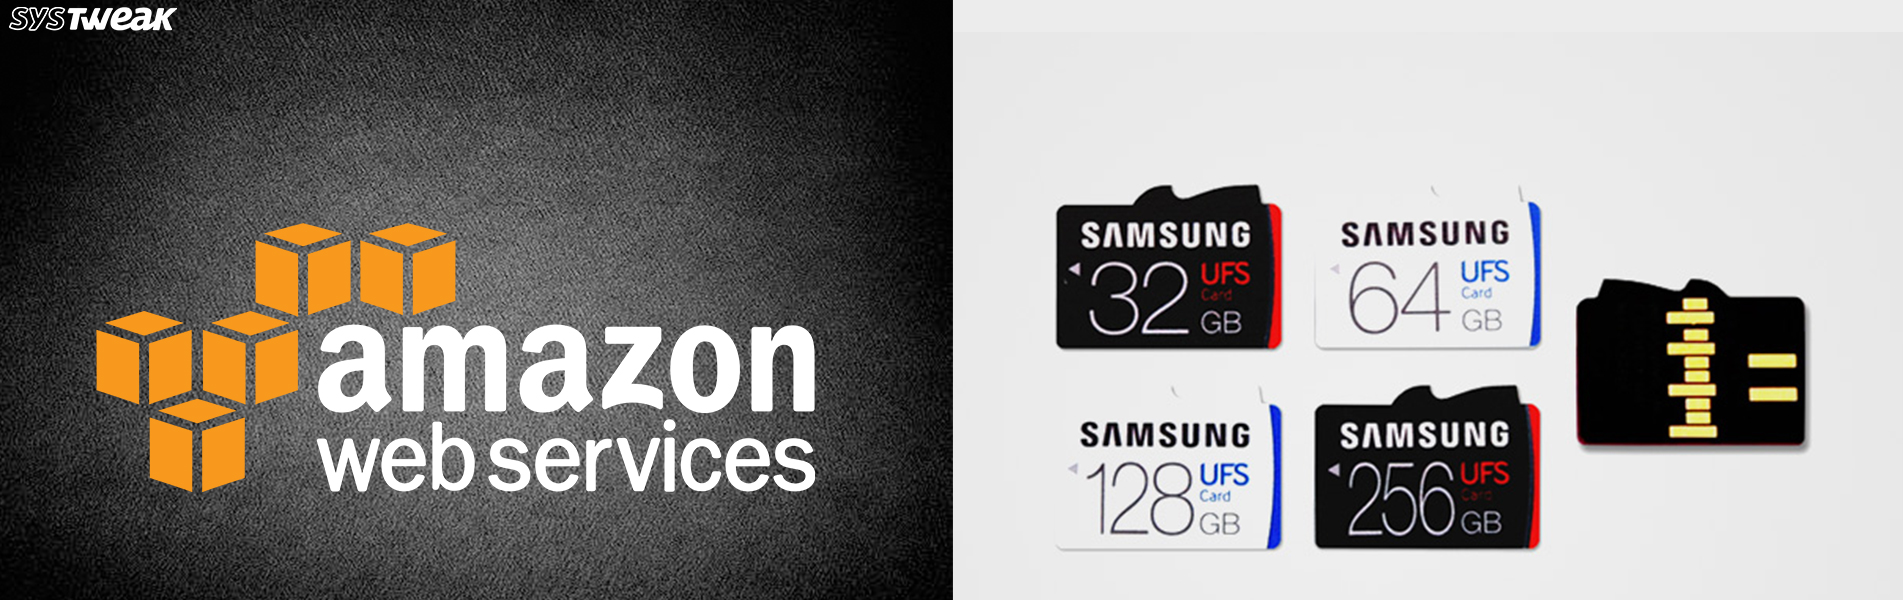 Newsletter: Amazon Web Services' Revenue Is All Time High  & All About  UFS 3.0